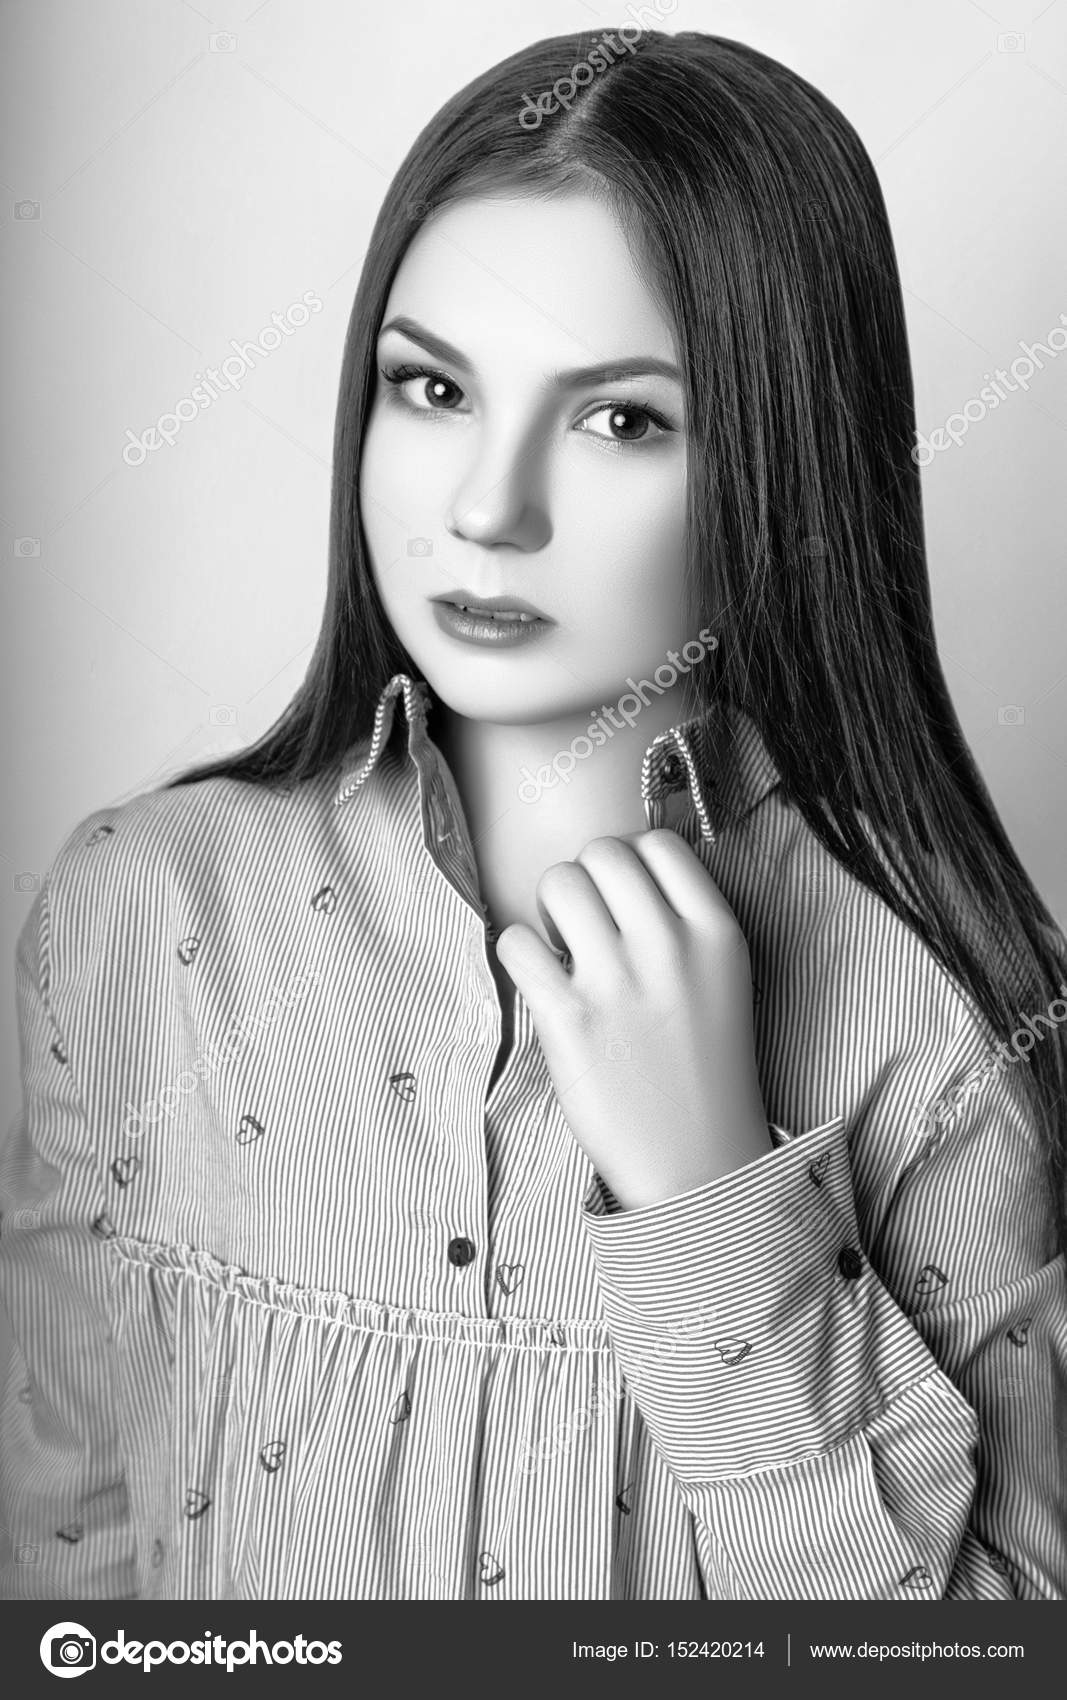 Beautiful teenage girl with long hair on a white background studio photo dressed in a blue blouse and jeans black and white photo by